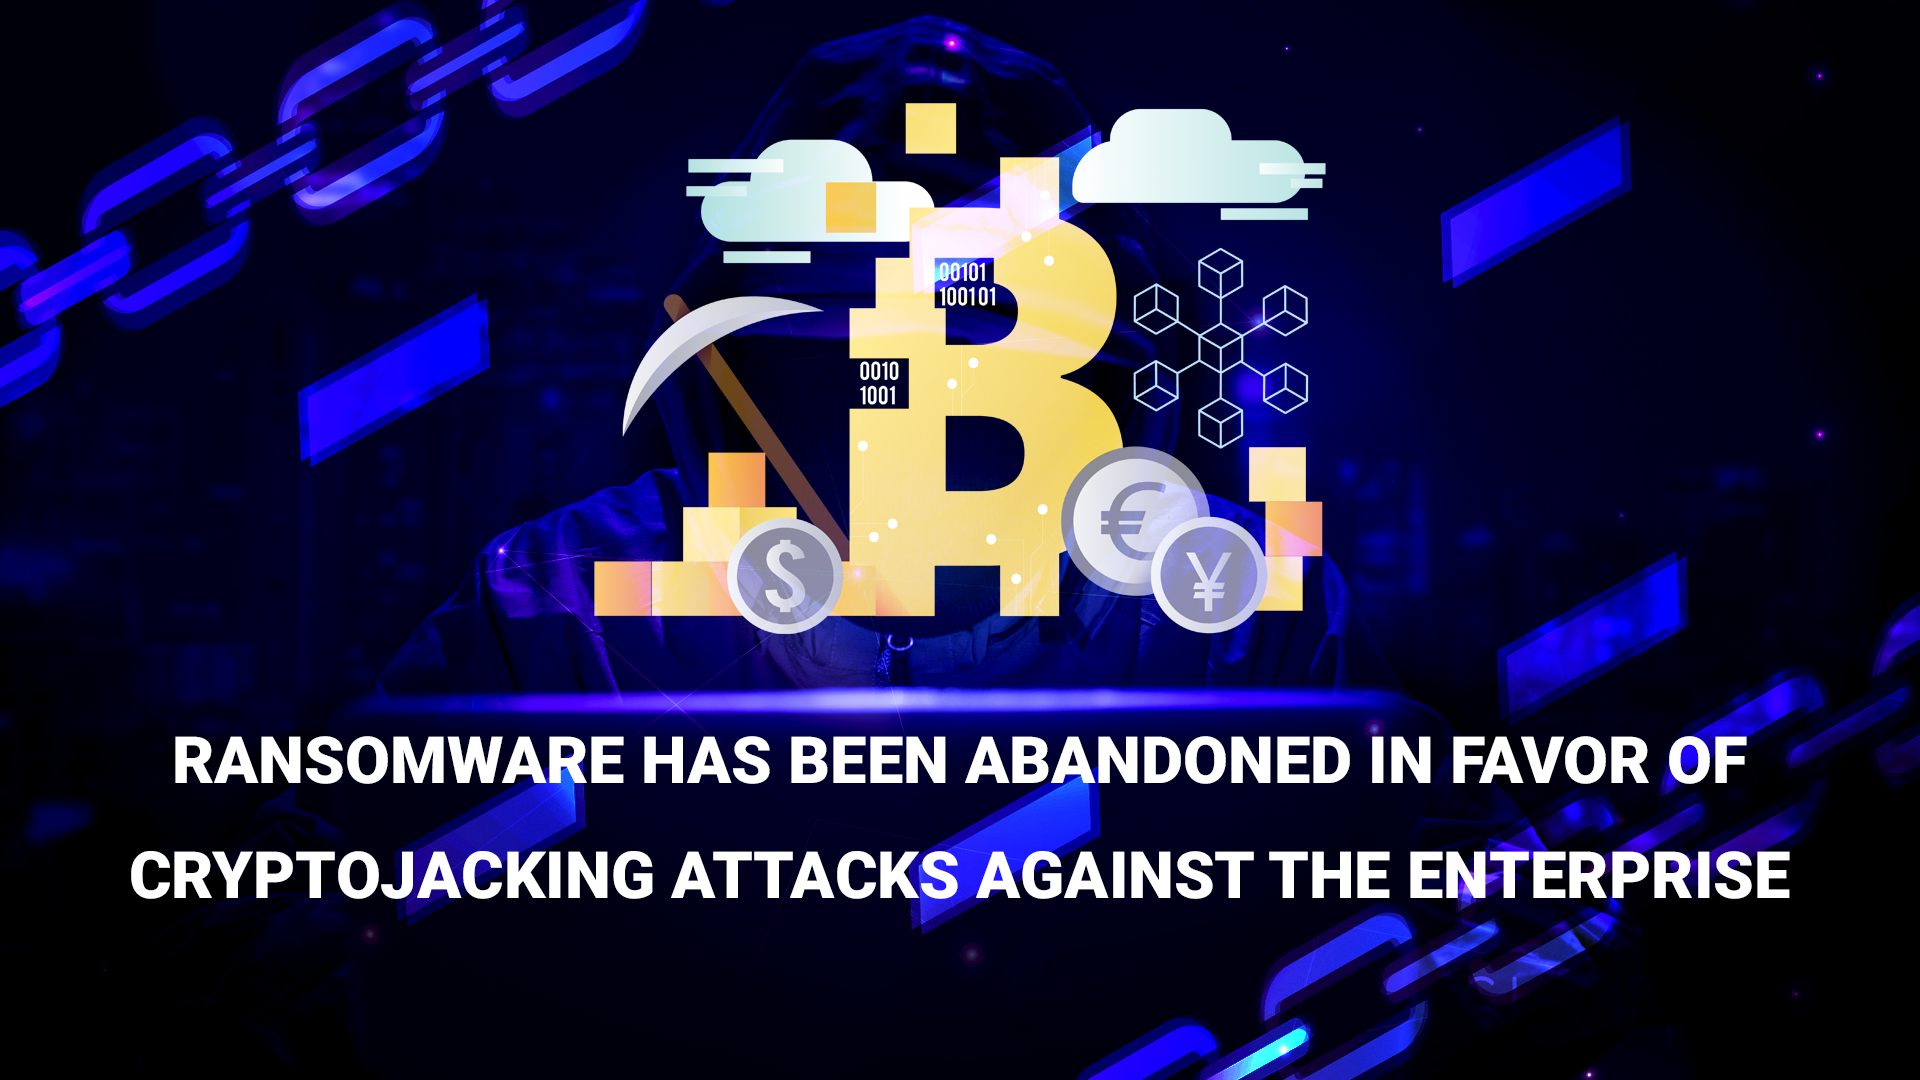 Ransomware has been abandoned in favor of cryptojacking attacks against the enterprise